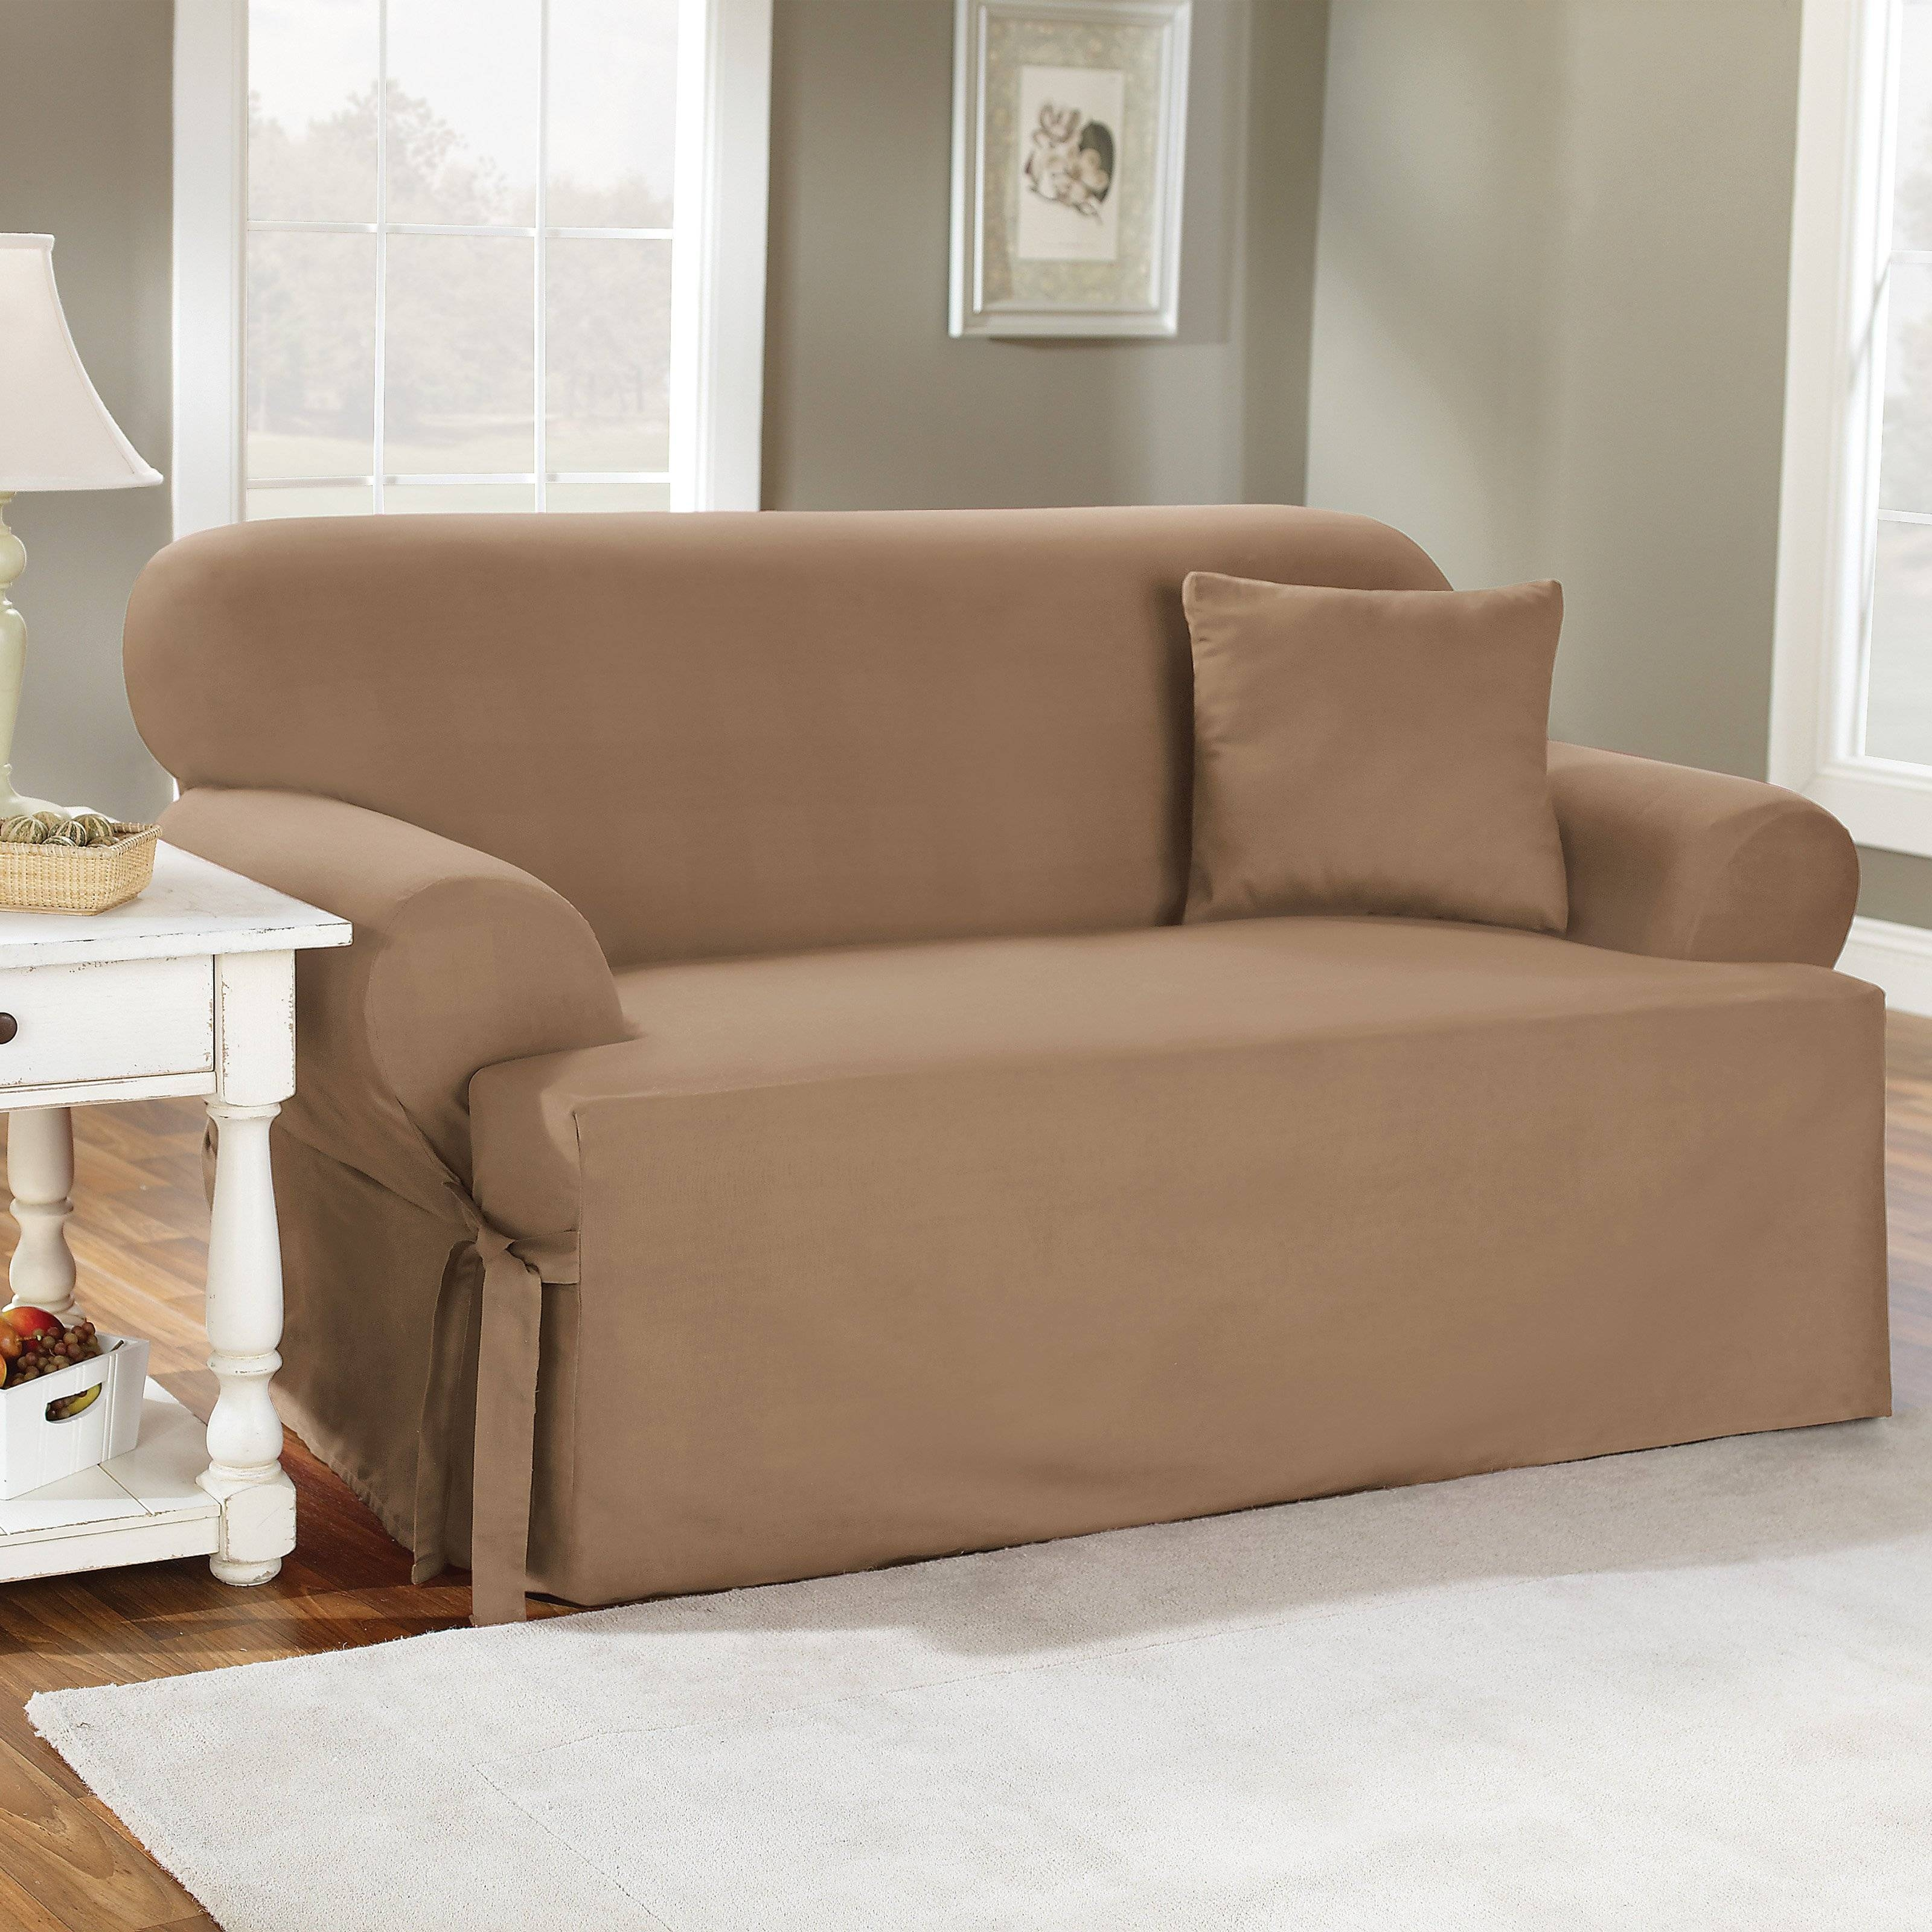 Furniture: Wonderful Walmart Couch Covers Design For Alluring in 3 Piece Sectional Sofa Slipcovers (Image 12 of 33)